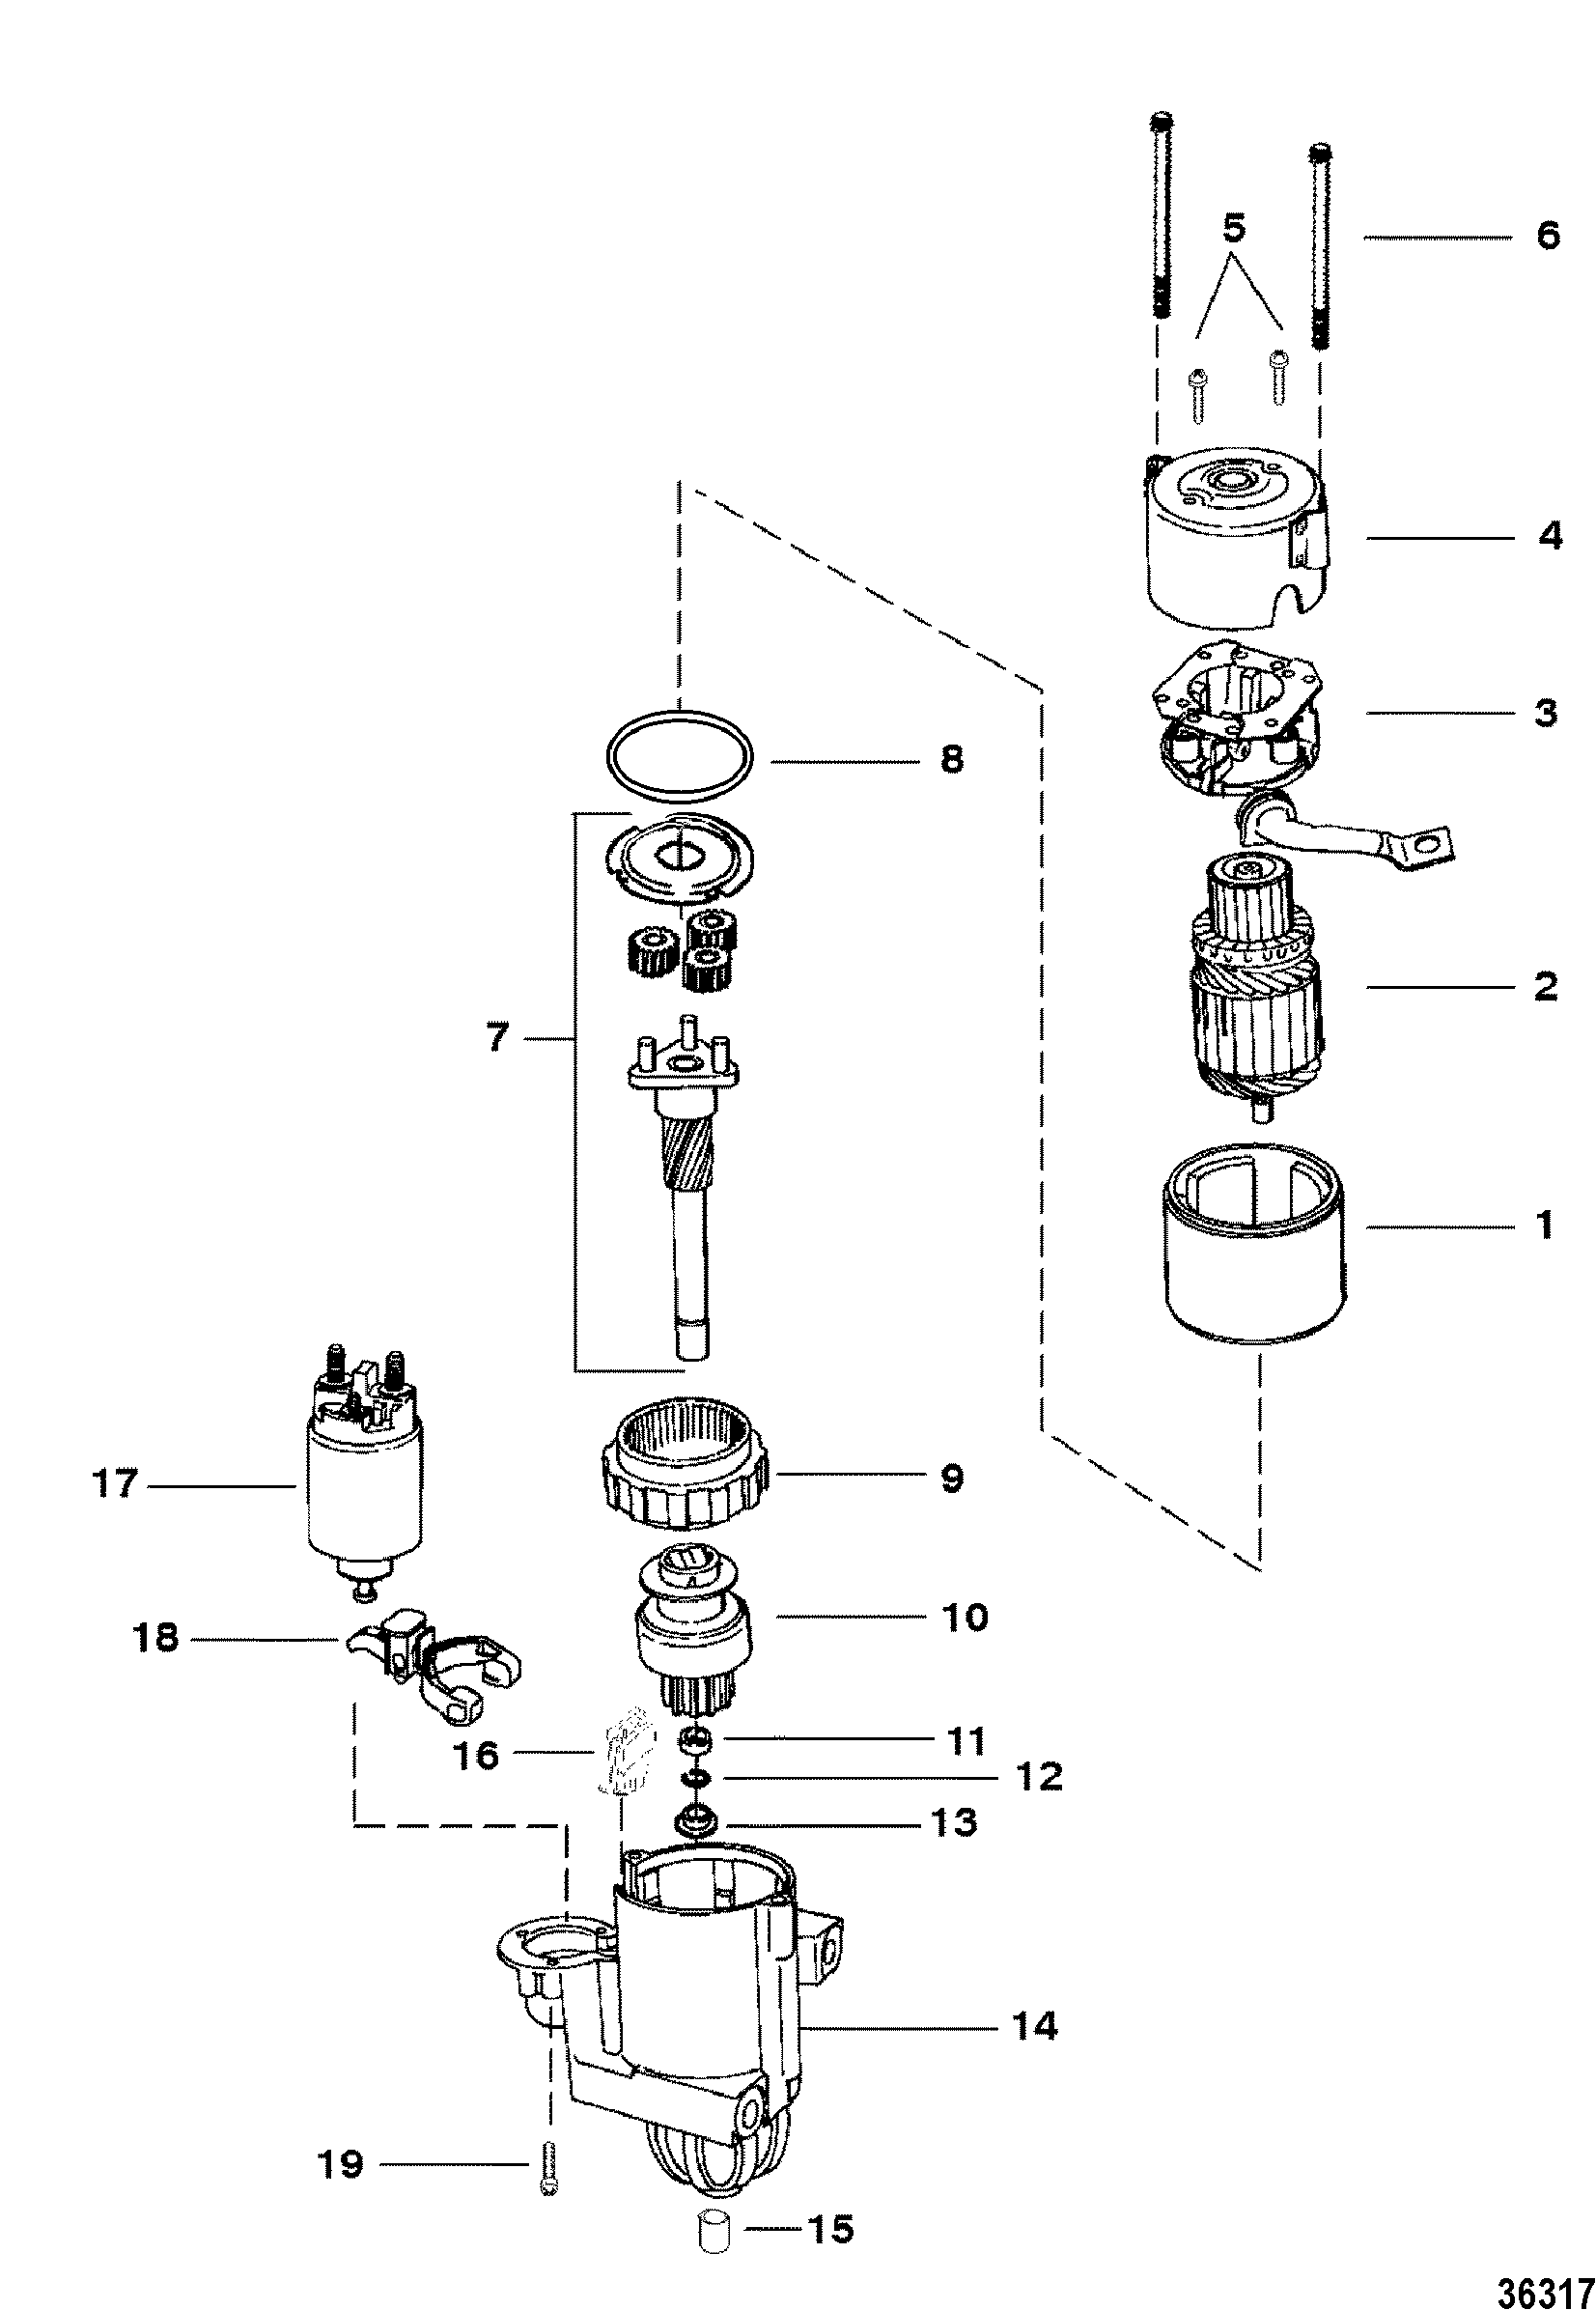 mallory marine fuel filter water separator